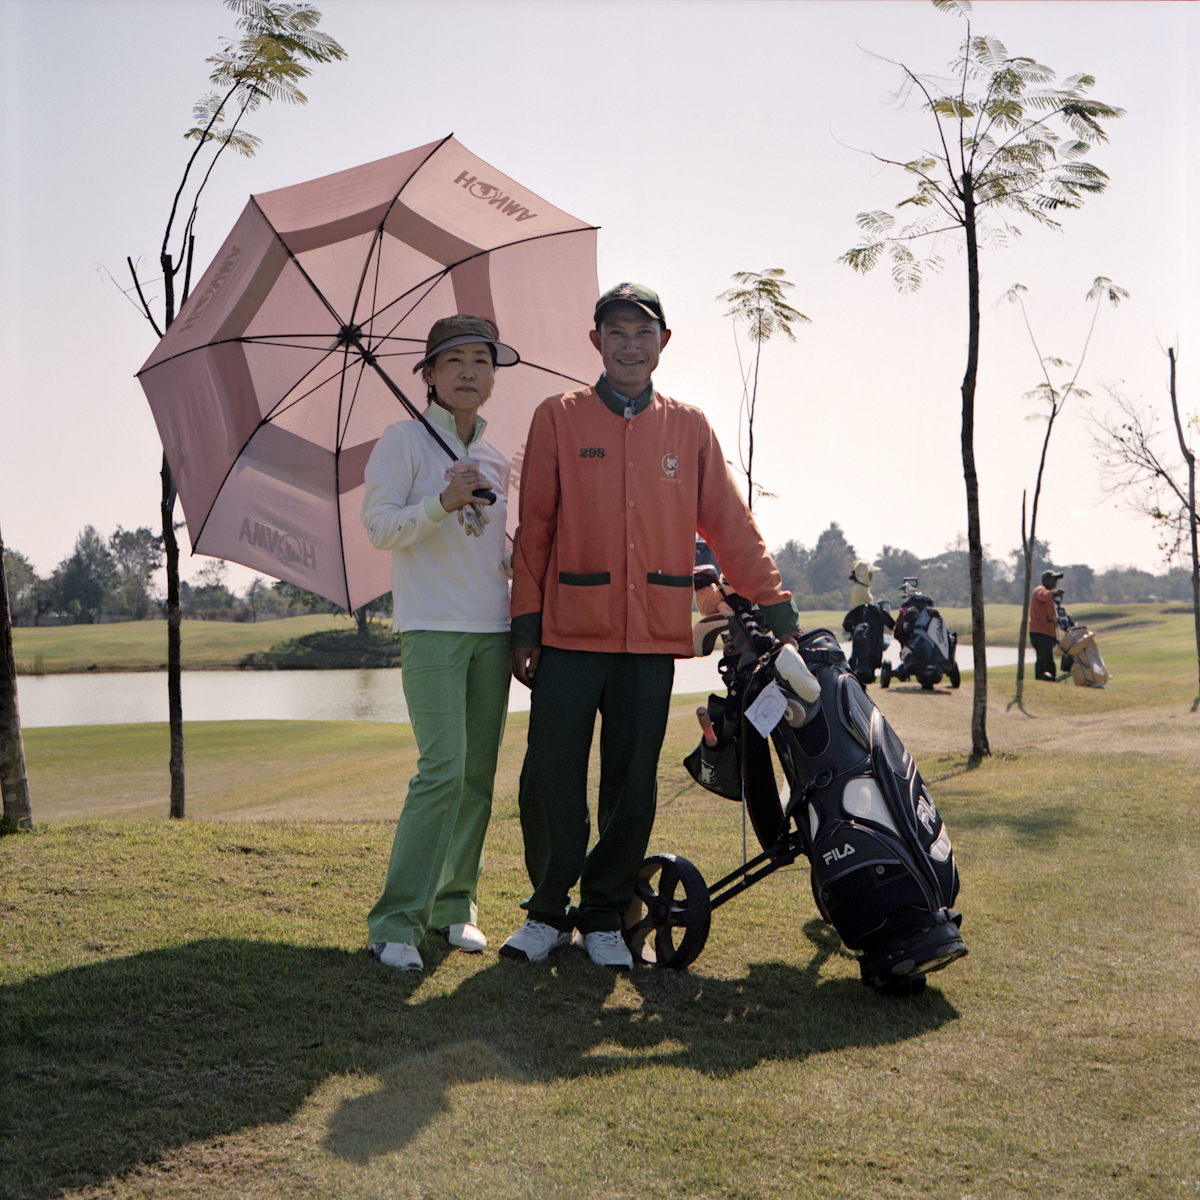 The Laos Country Club, the first golf club in Vientiane, was built by Korean investors.